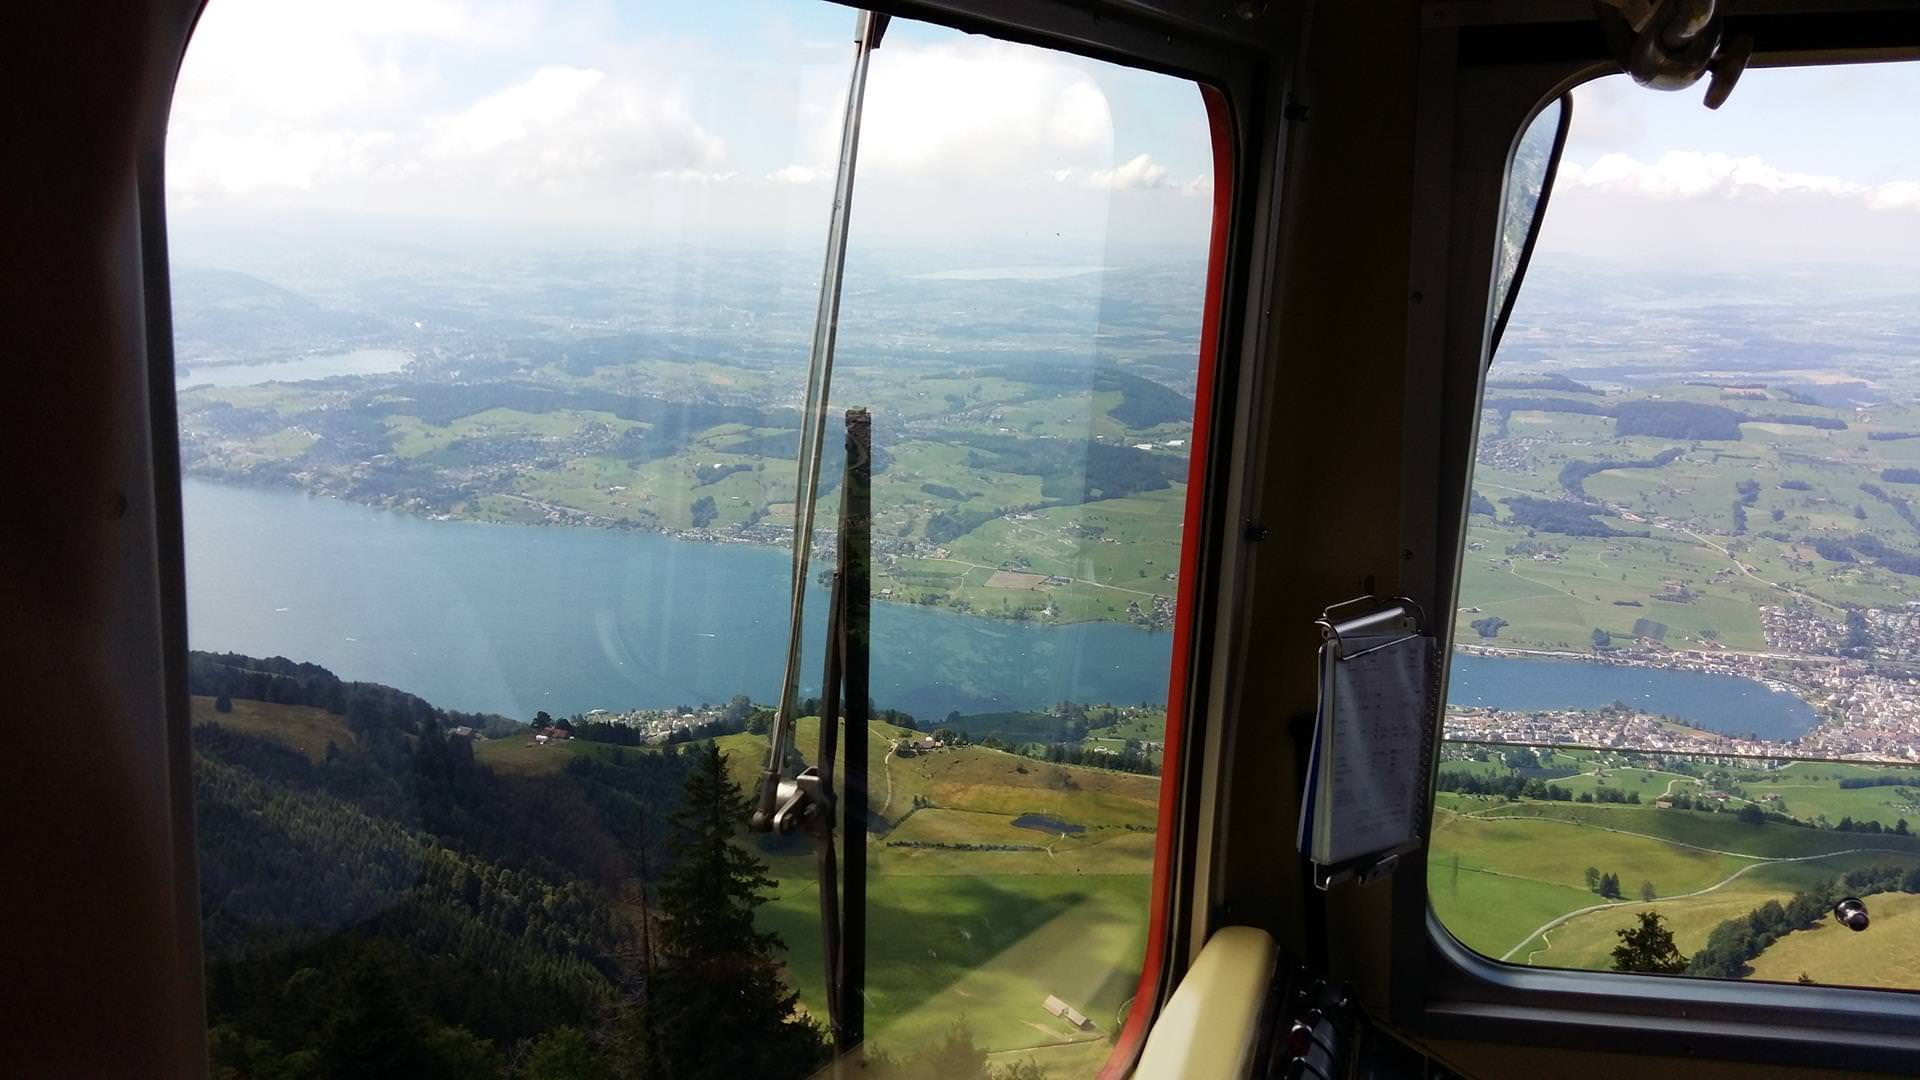 Starting our decent down to Vitznau, the view here was probably the best in Switzerland. You could see for miles in just about every direction.